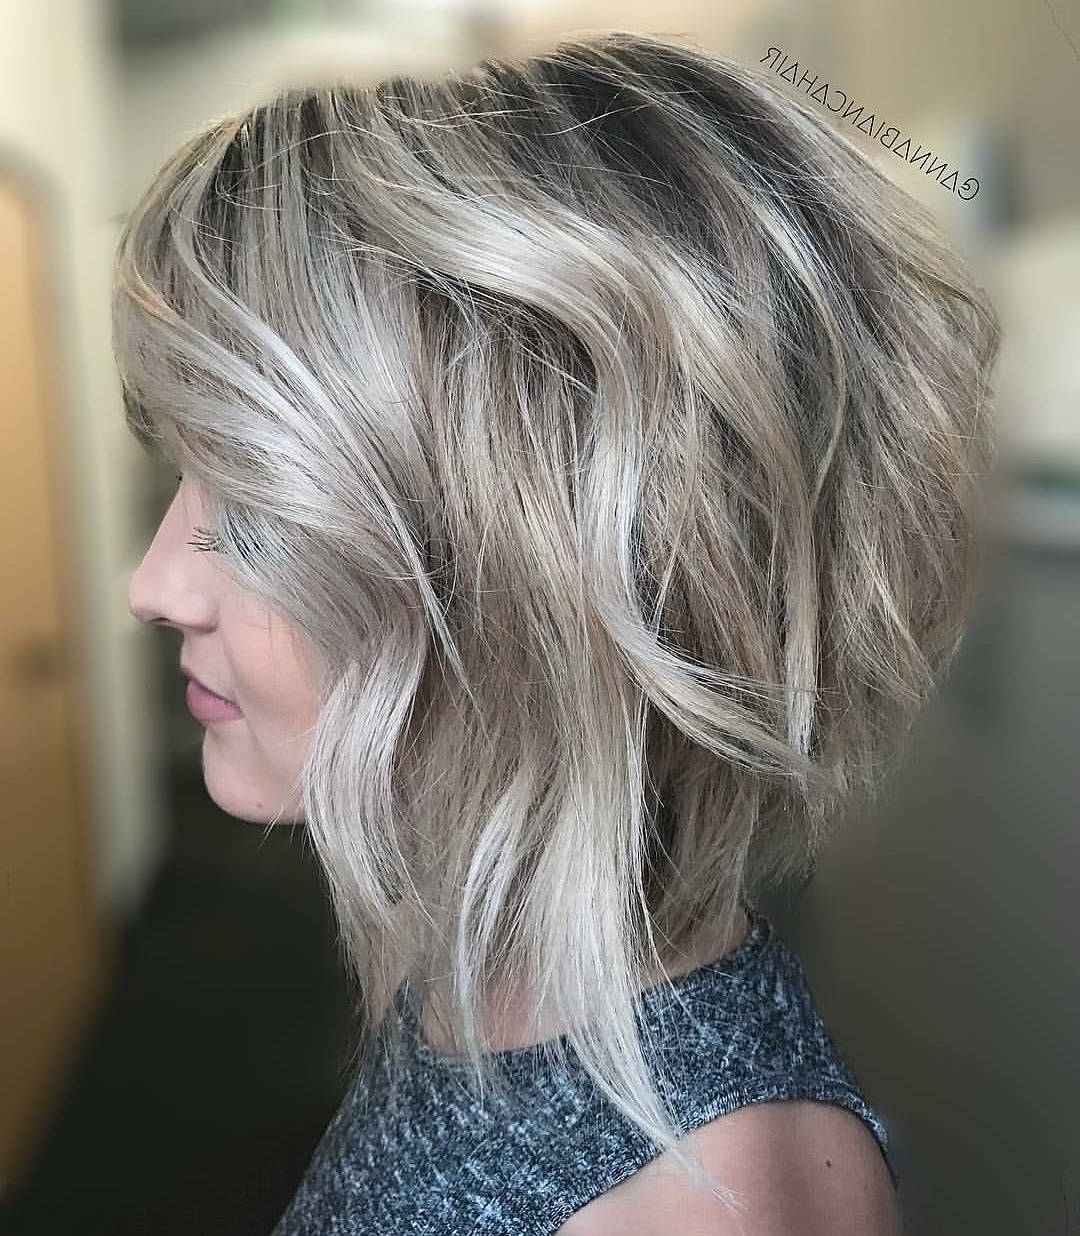 Current Easy Care Medium Haircuts Intended For 10 Stylish Medium Bob Haircuts For Women – Easy Care Chic Bob Hair  (View 8 of 20)